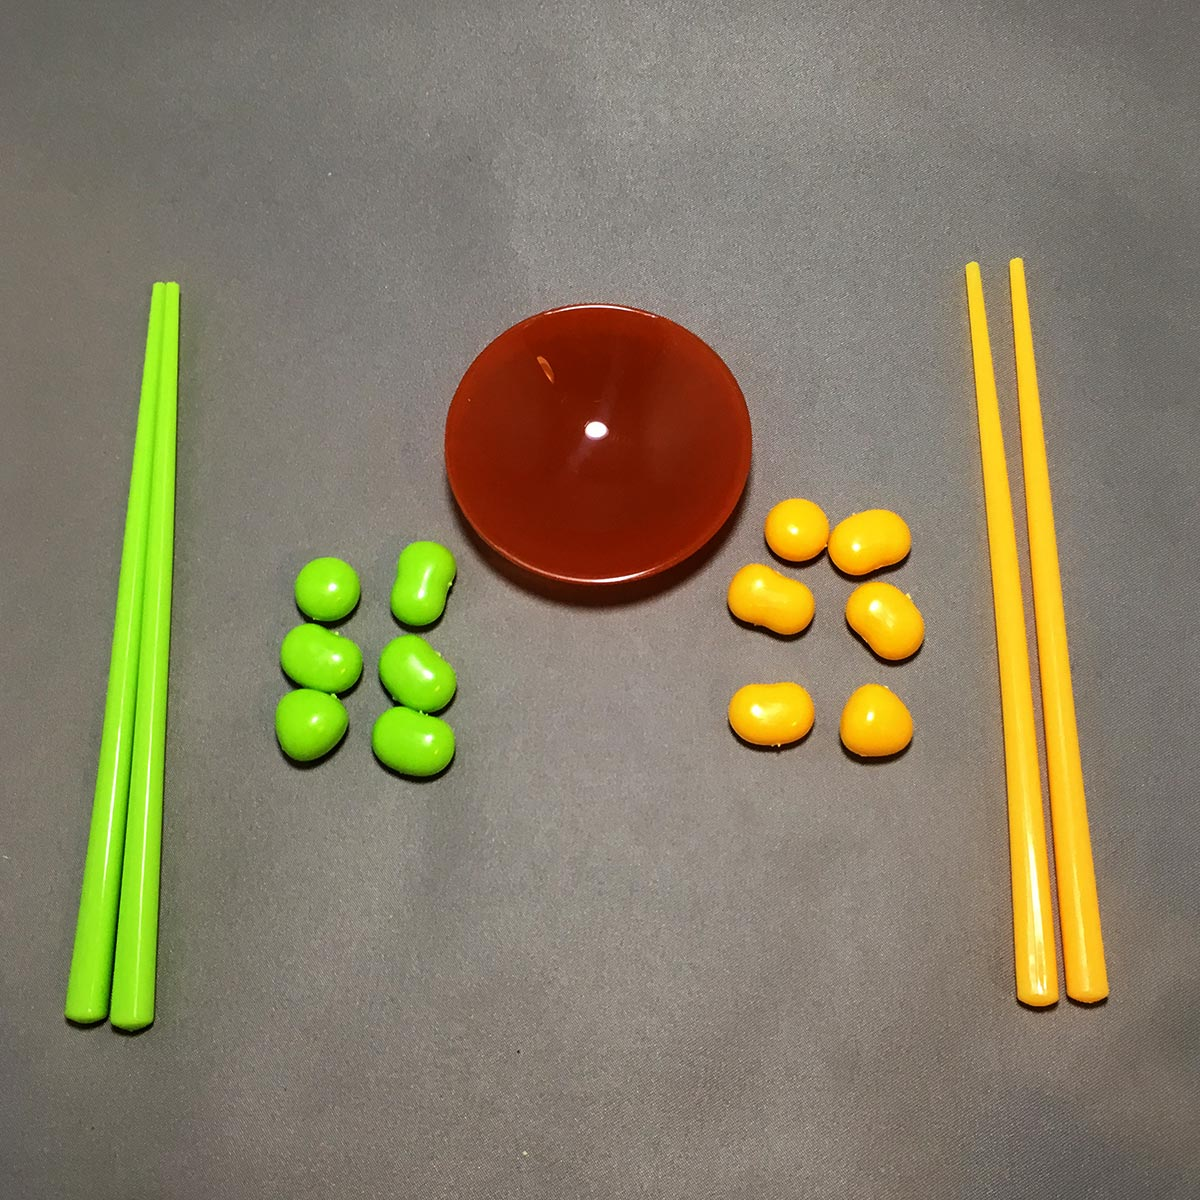 Chopstick Bean Grabbing Game - Game Parts Detached